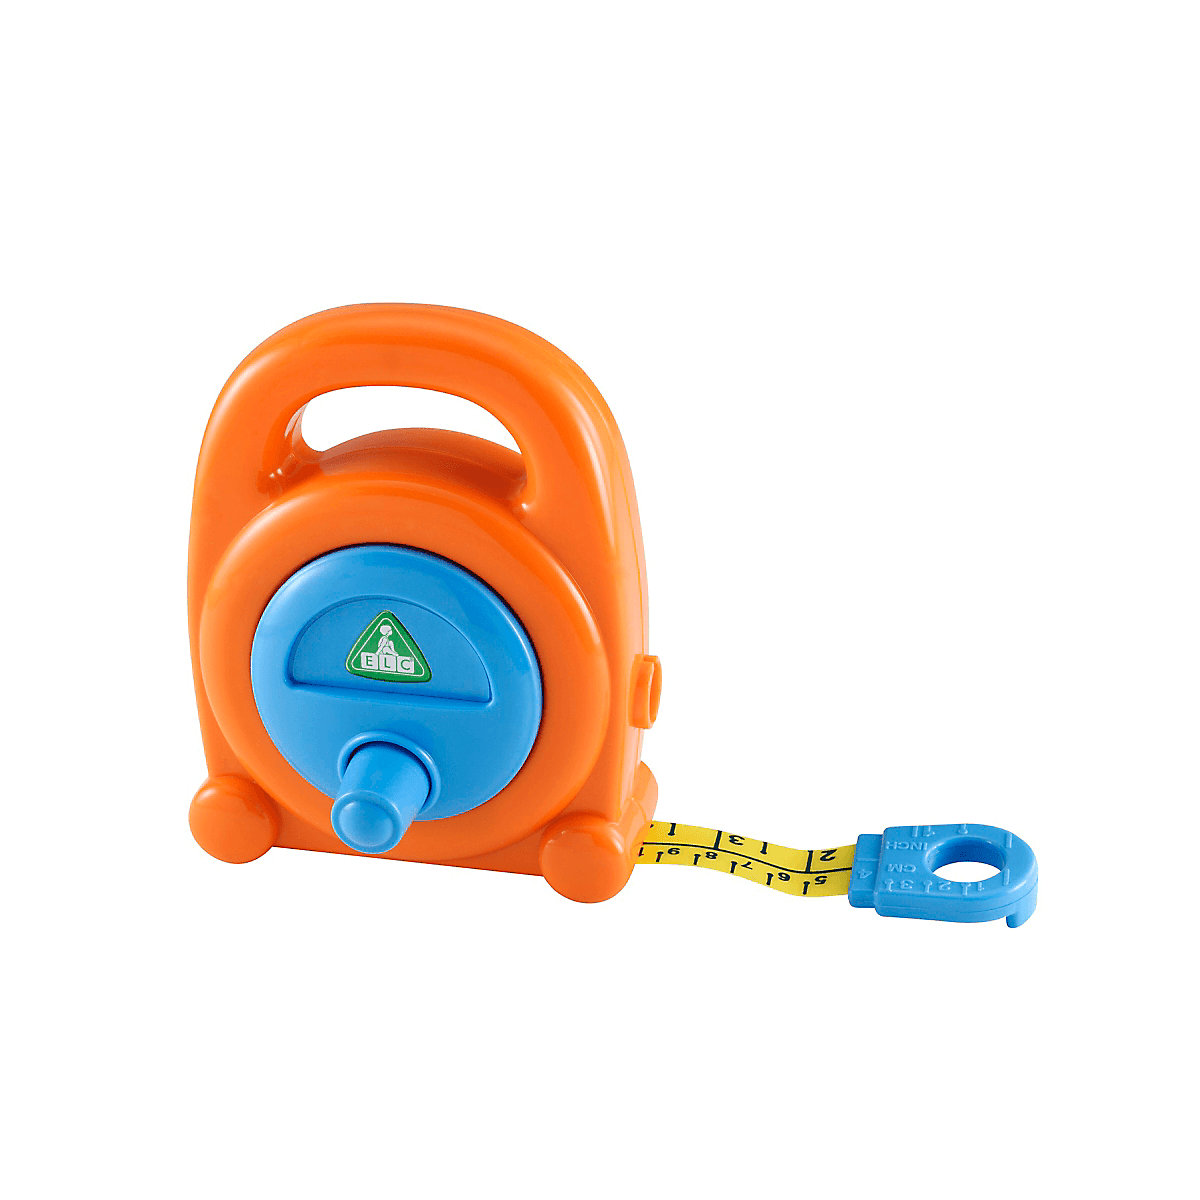 New ELC Boys and Girls Tape Measure Toy From 3 years